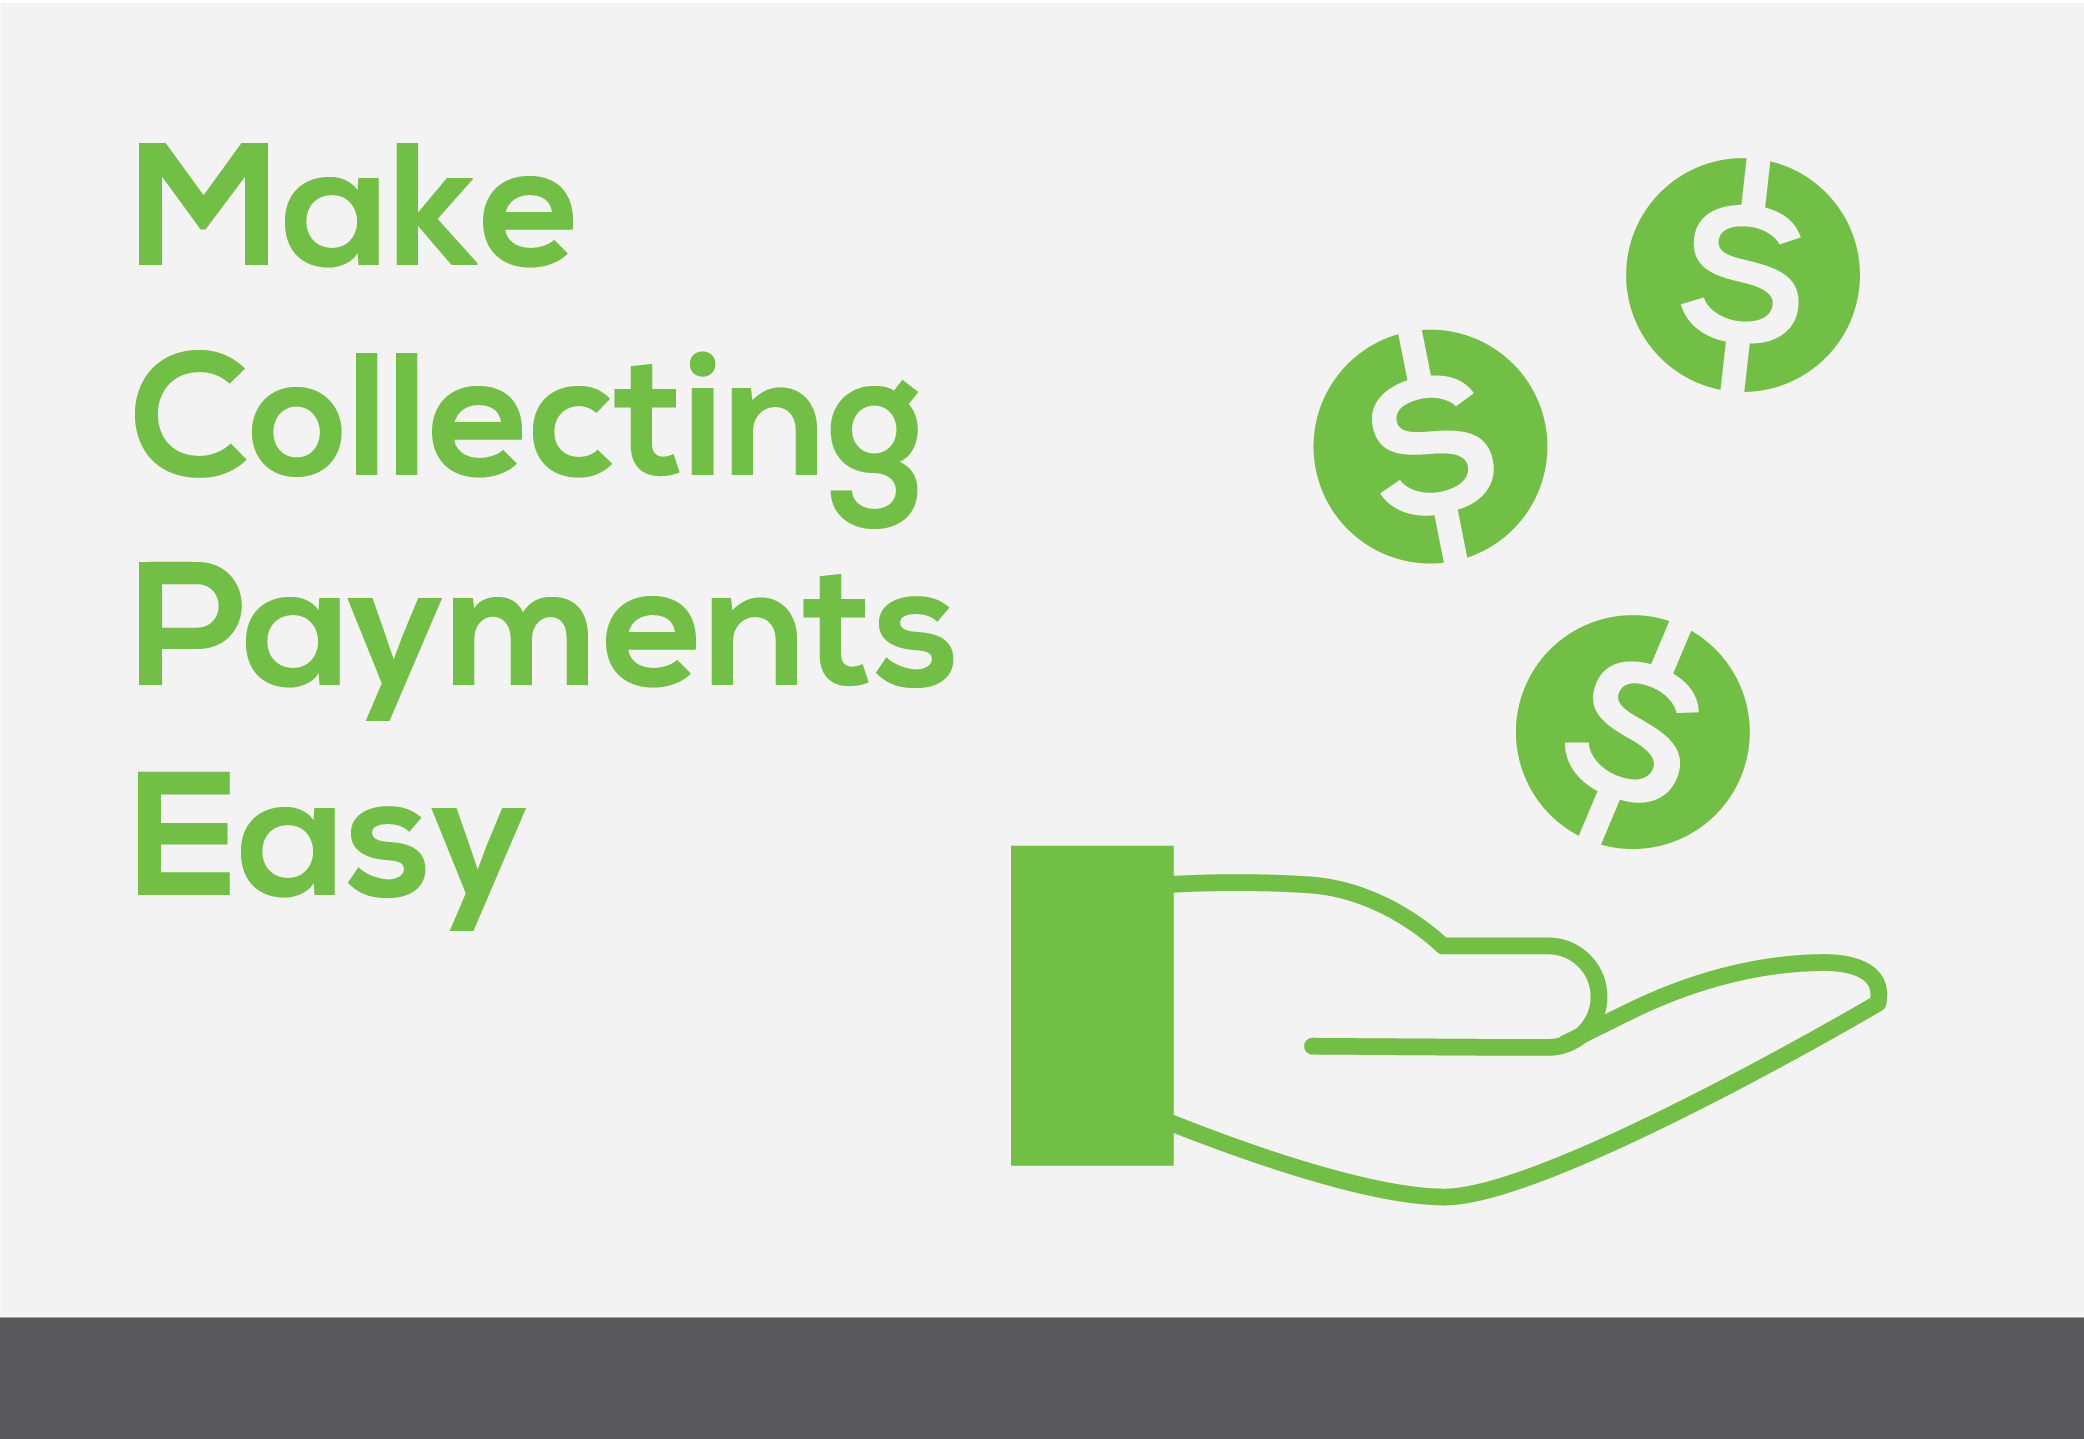 Make collecting payments easy